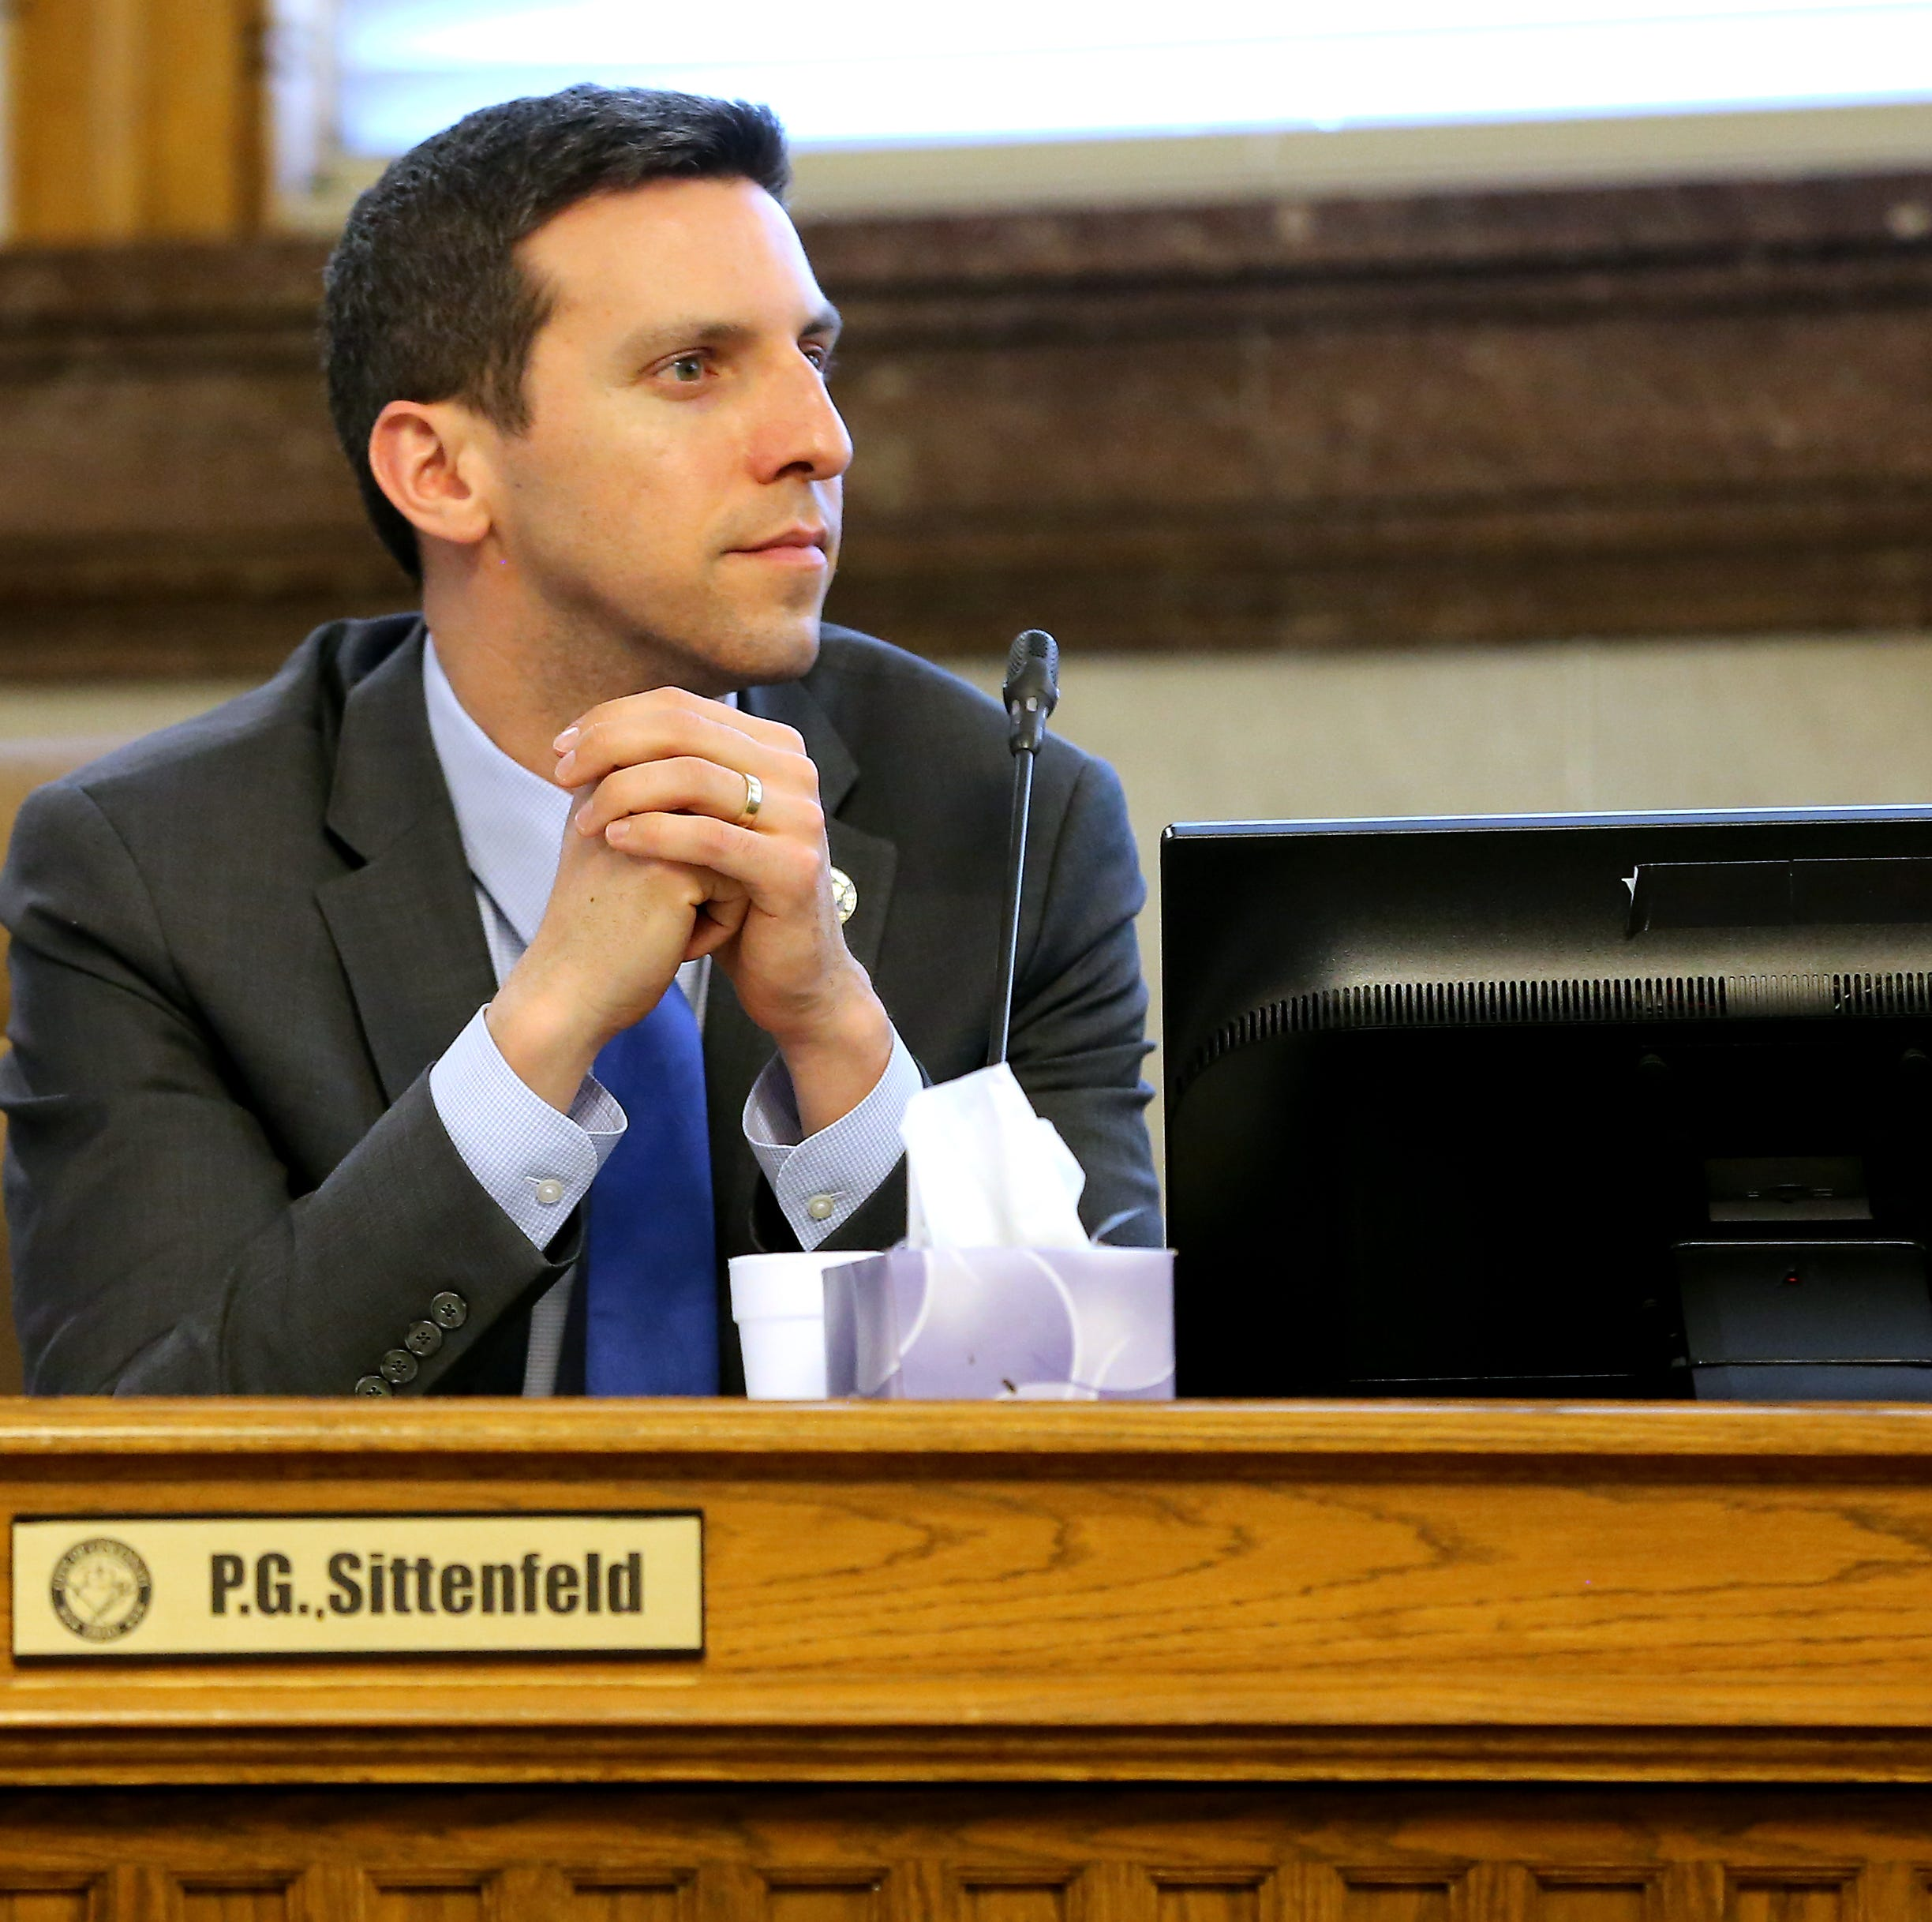 PX column: P.G. Sittenfeld is tying to be everything-to-everyone on the FC Cincinnati stadium issue. It's not helping